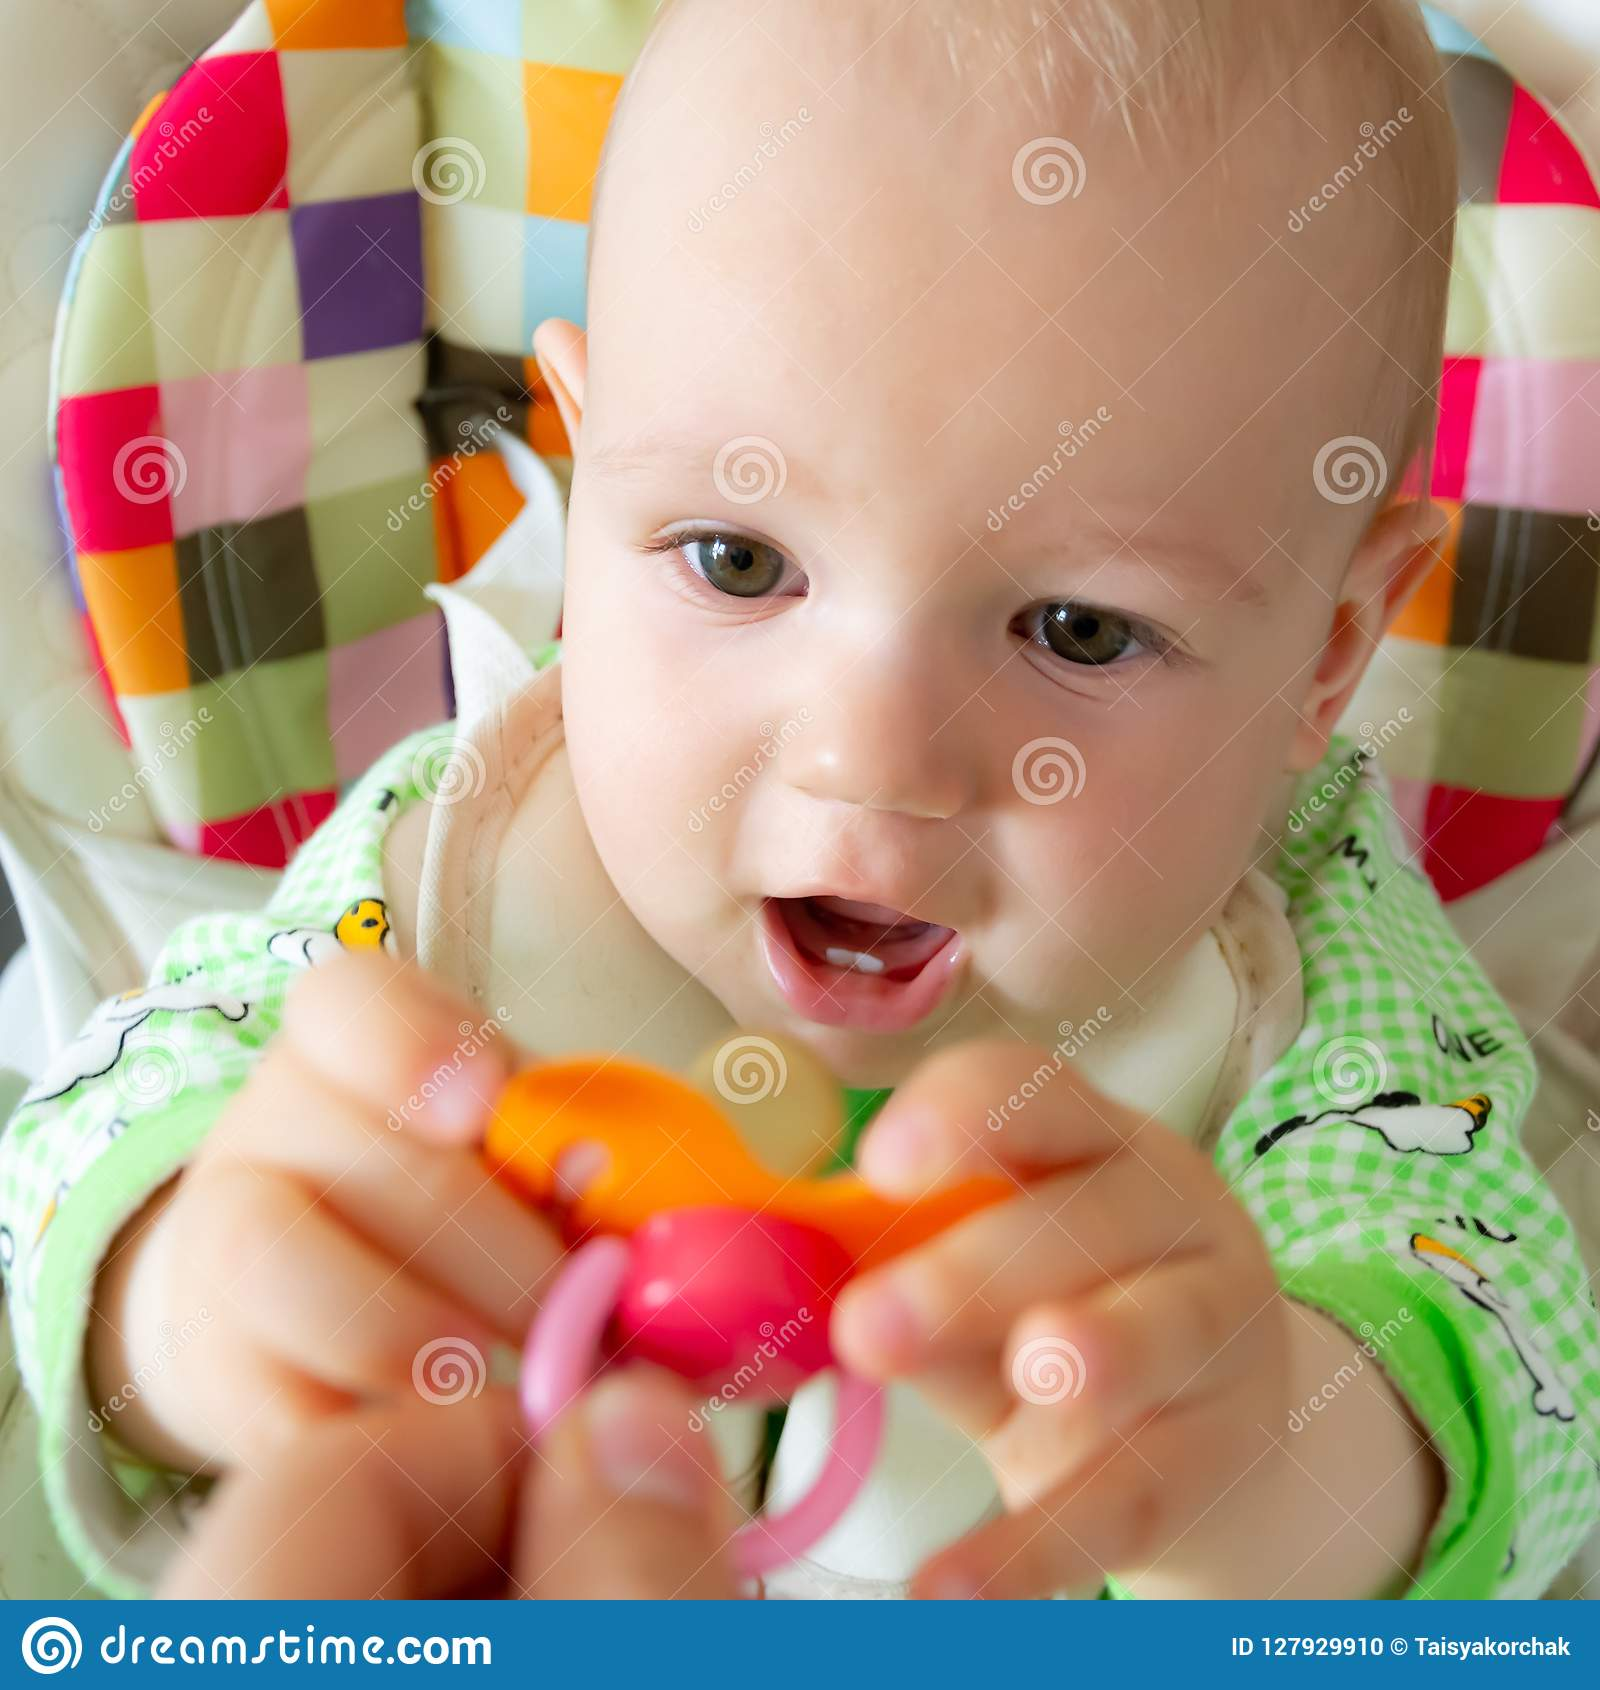 One year old baby nibbles / sucks on a rubber nipple because his teeth are being cut. Little cheerful boy in a light green suit wi